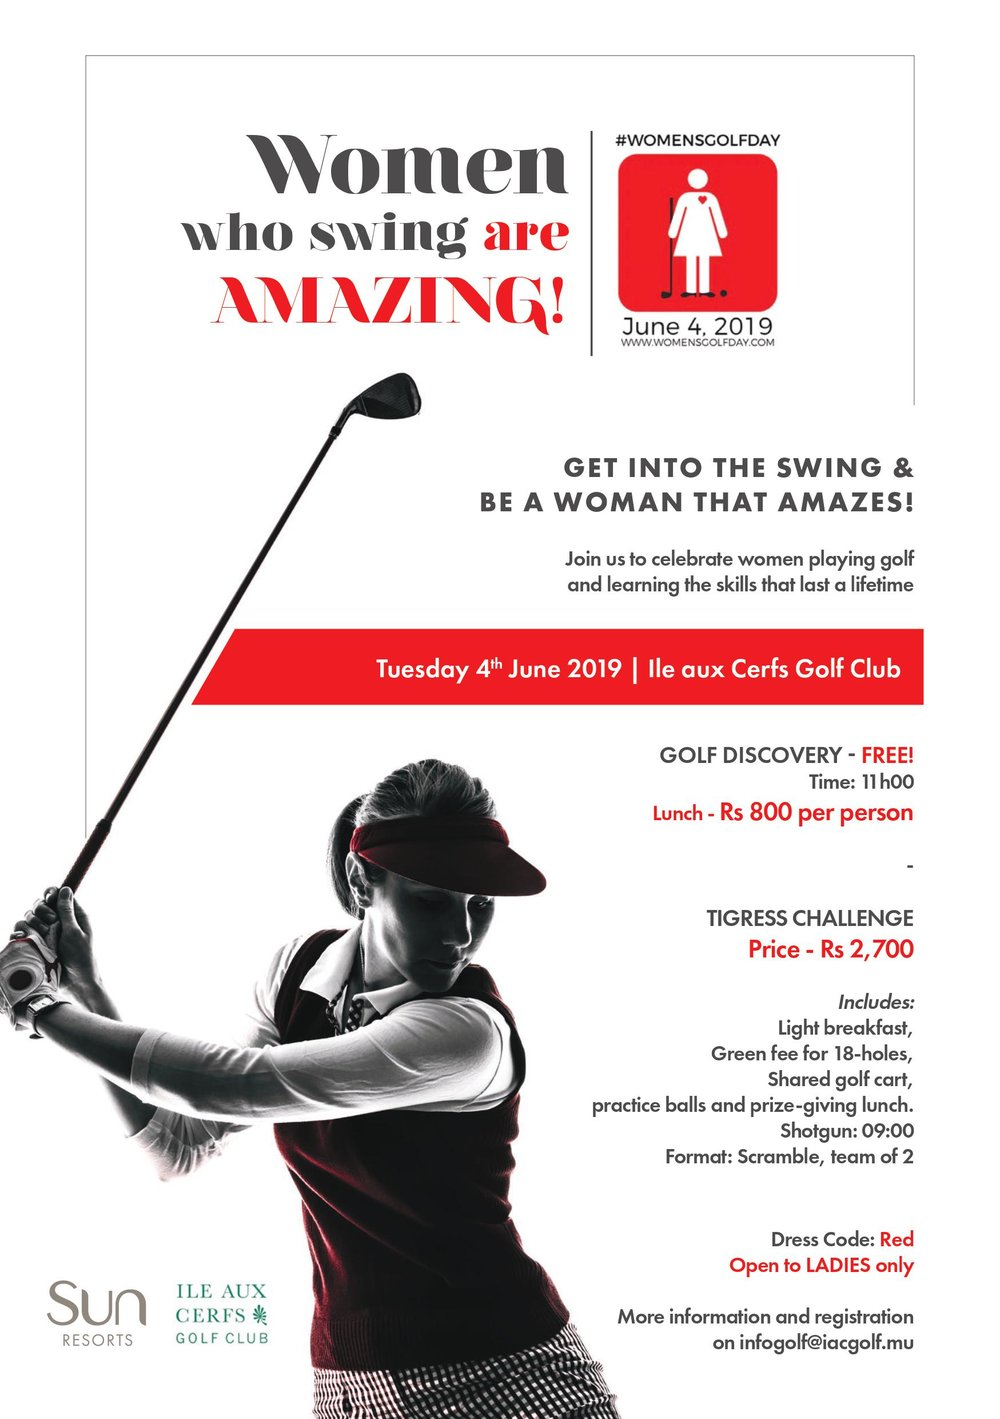 womengolfday2019